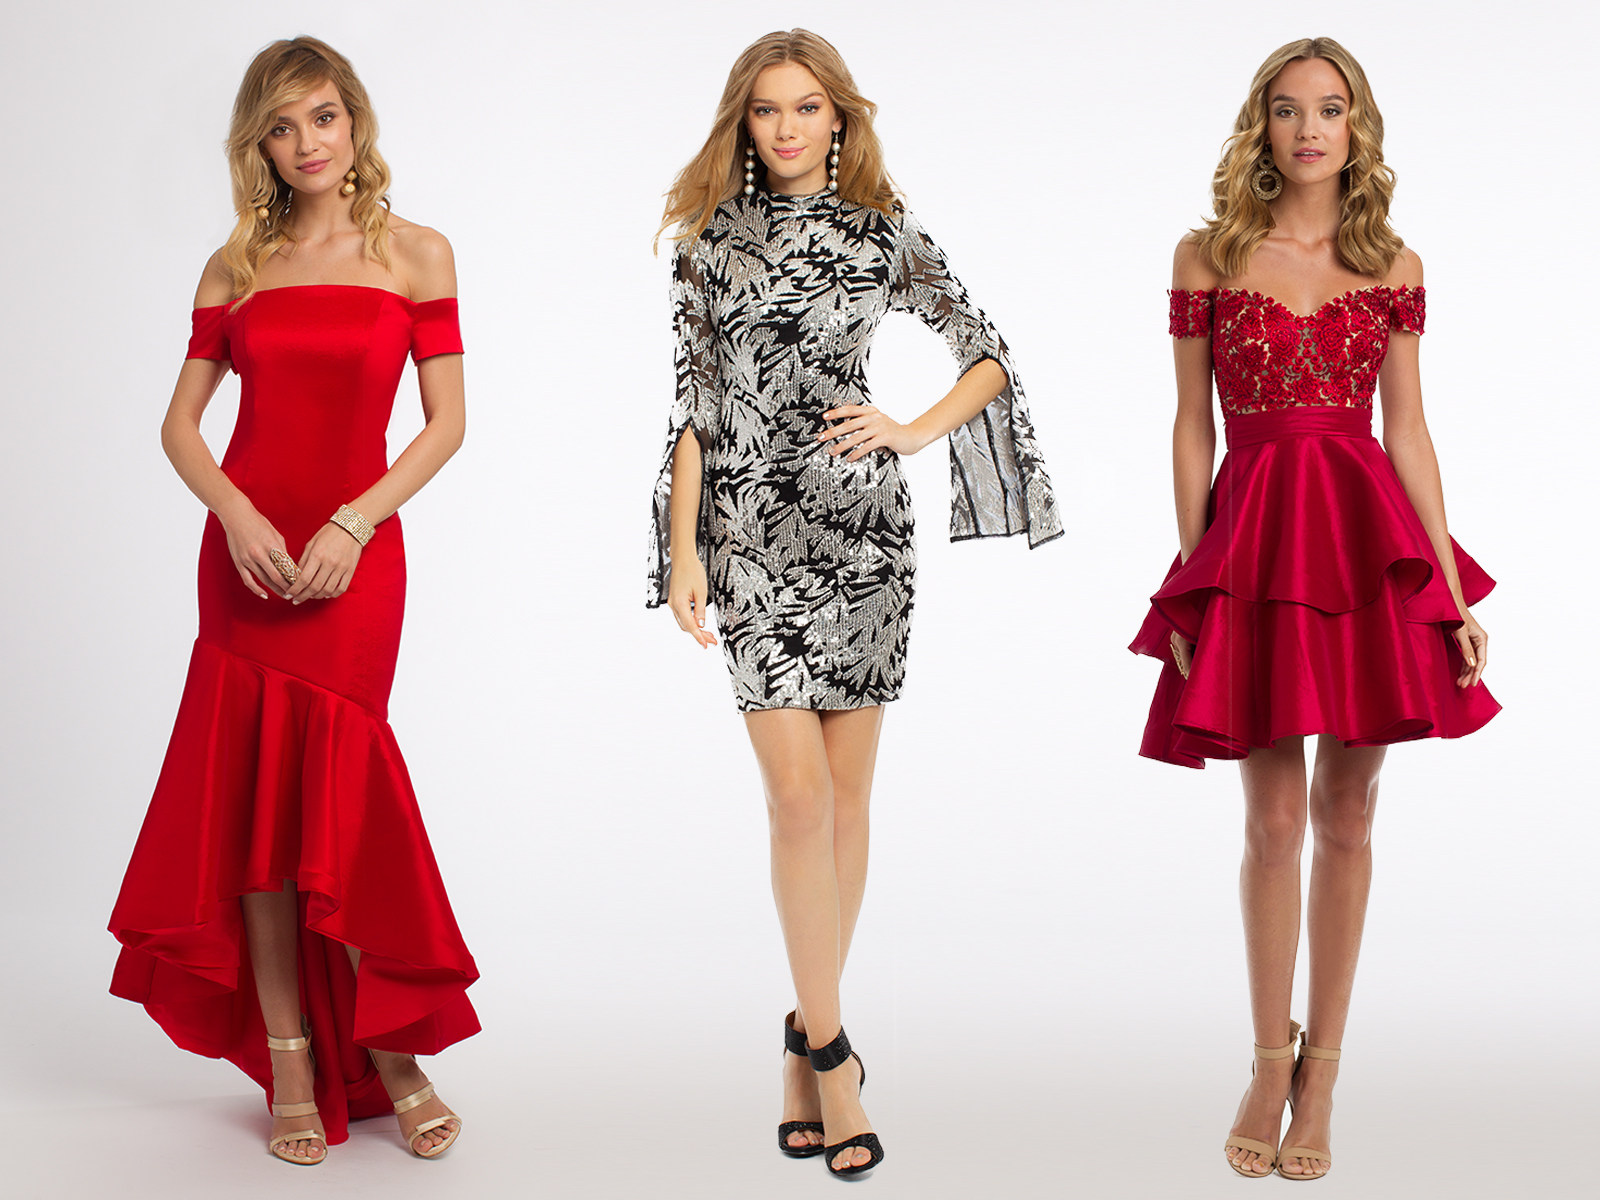 Cocktail Dresses by Camille La Vie